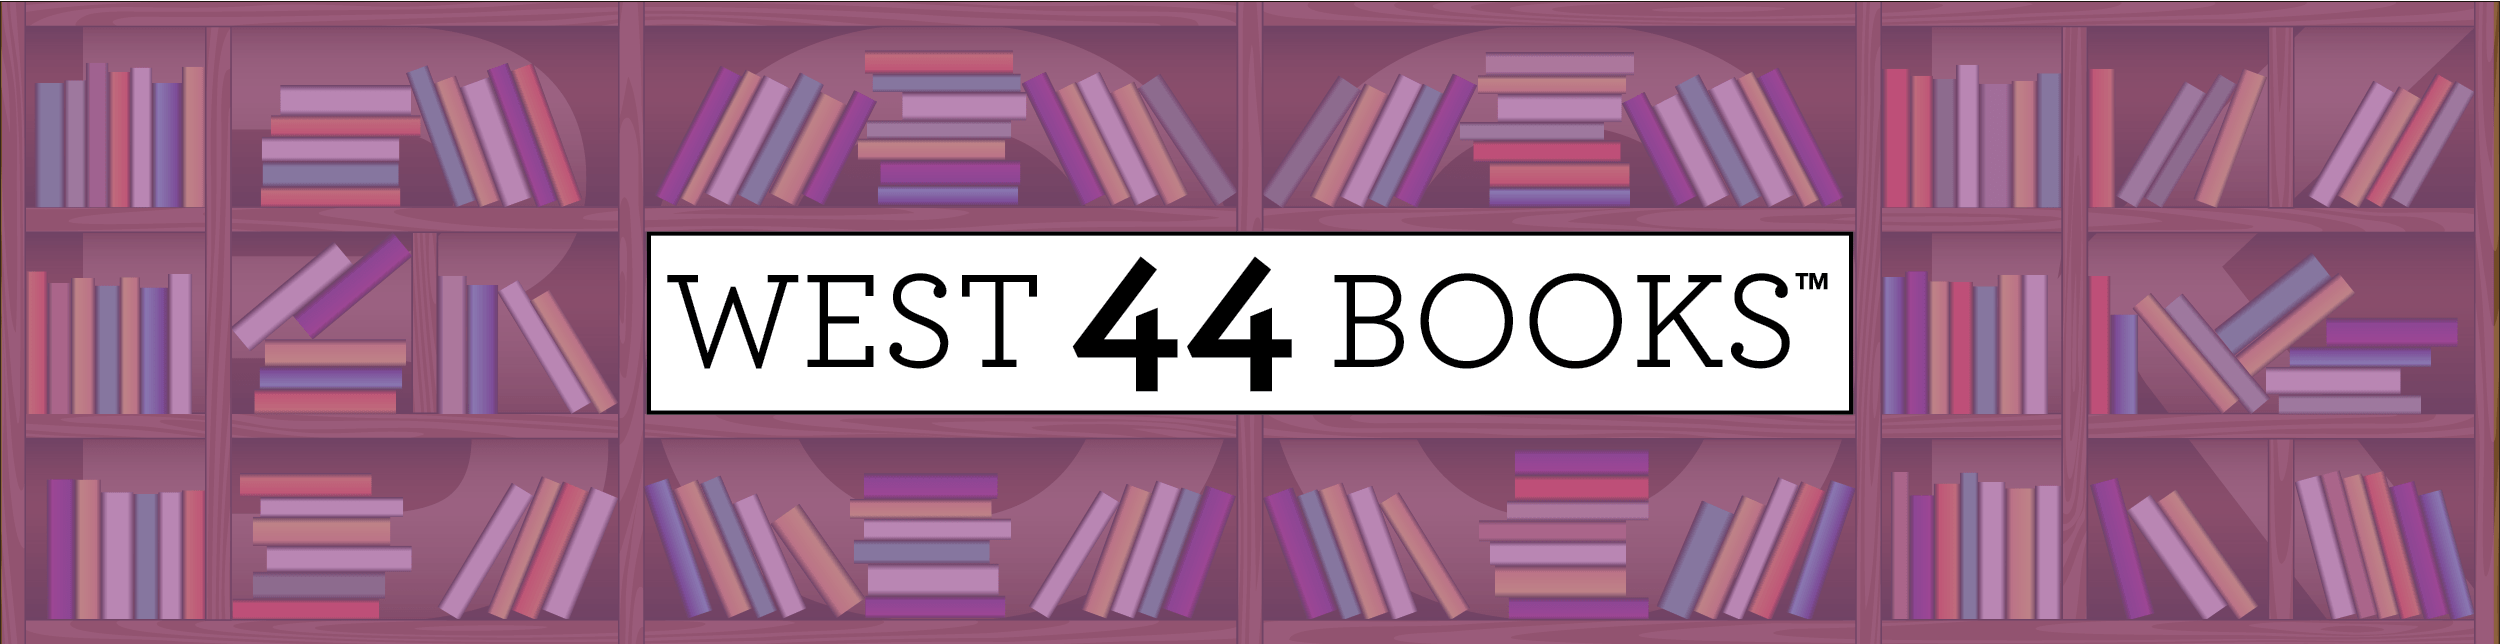 West44Books Blog